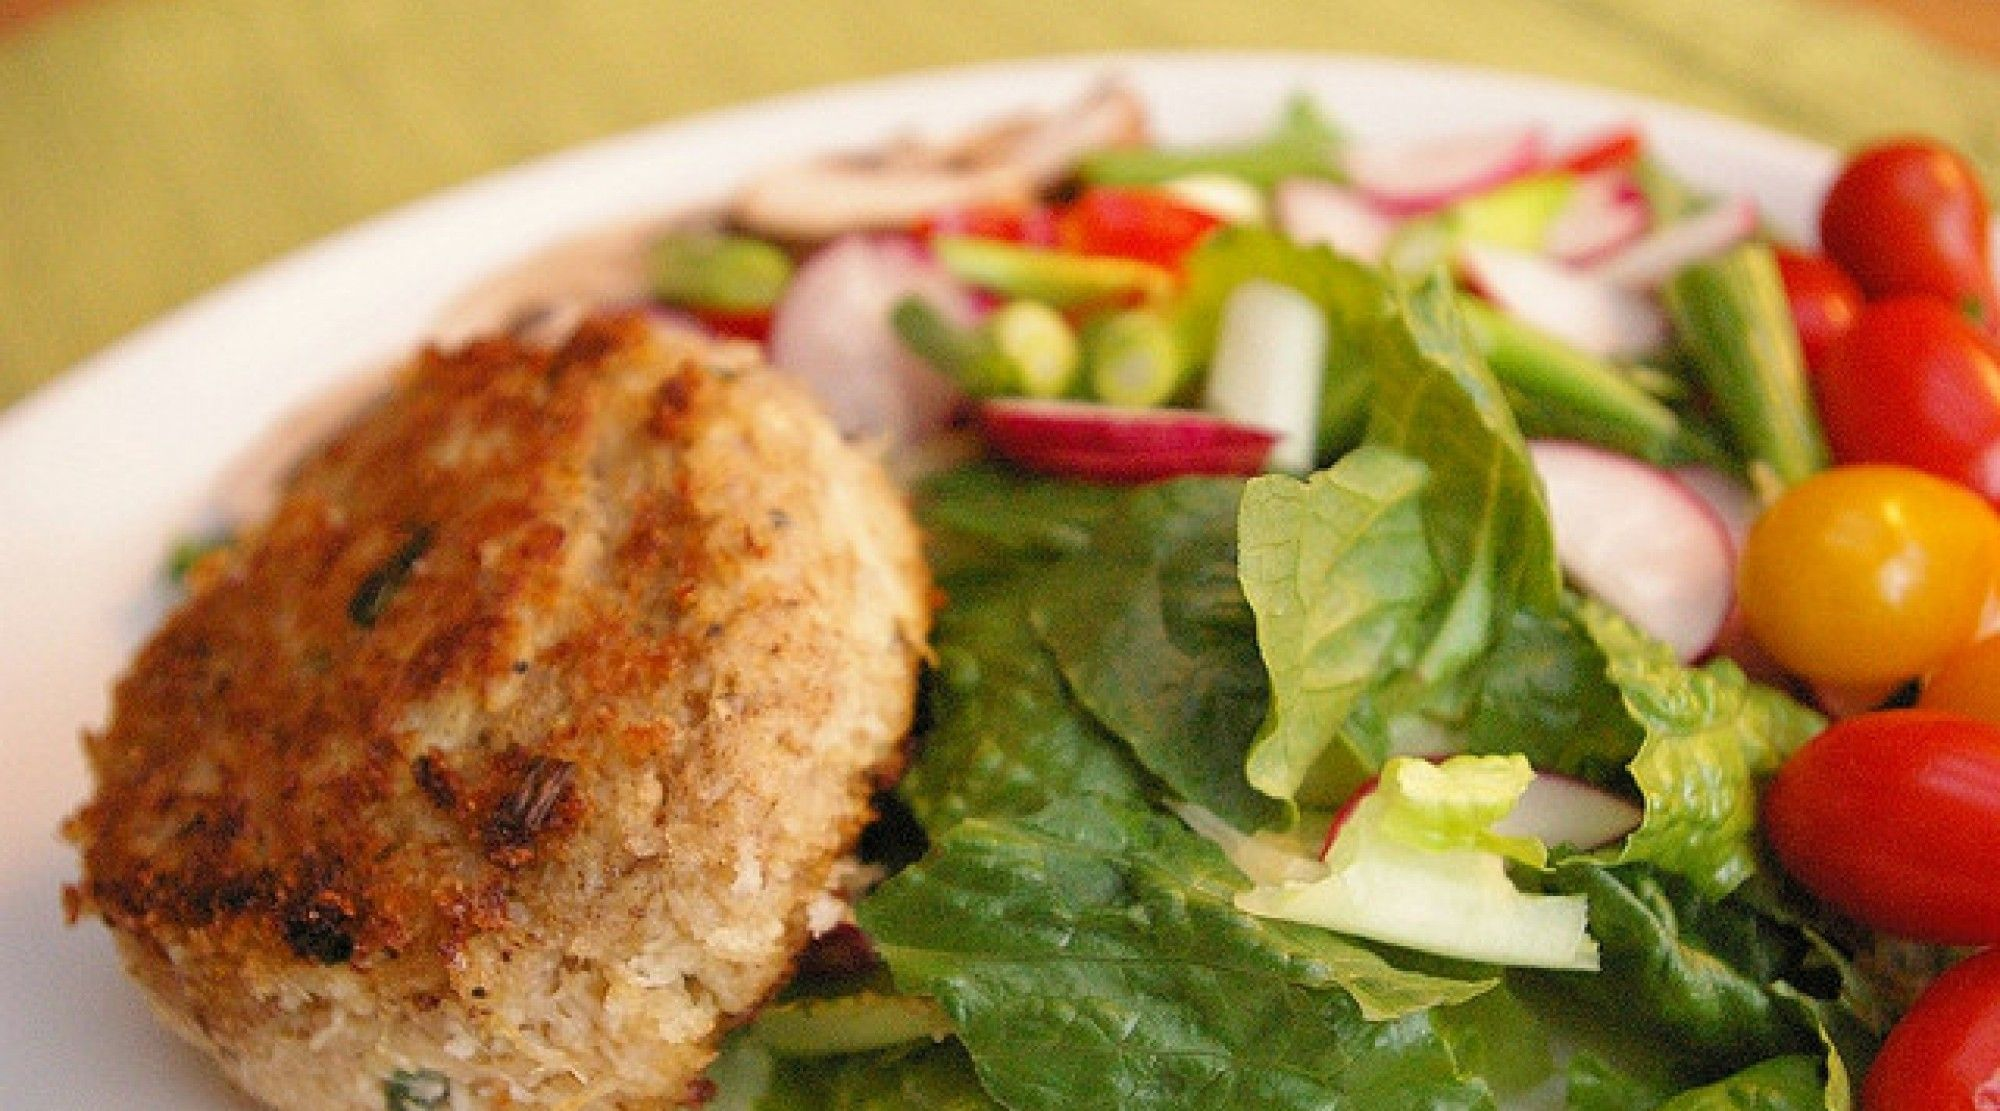 Crabby crabcakes recipe homemade crab cakes cooking